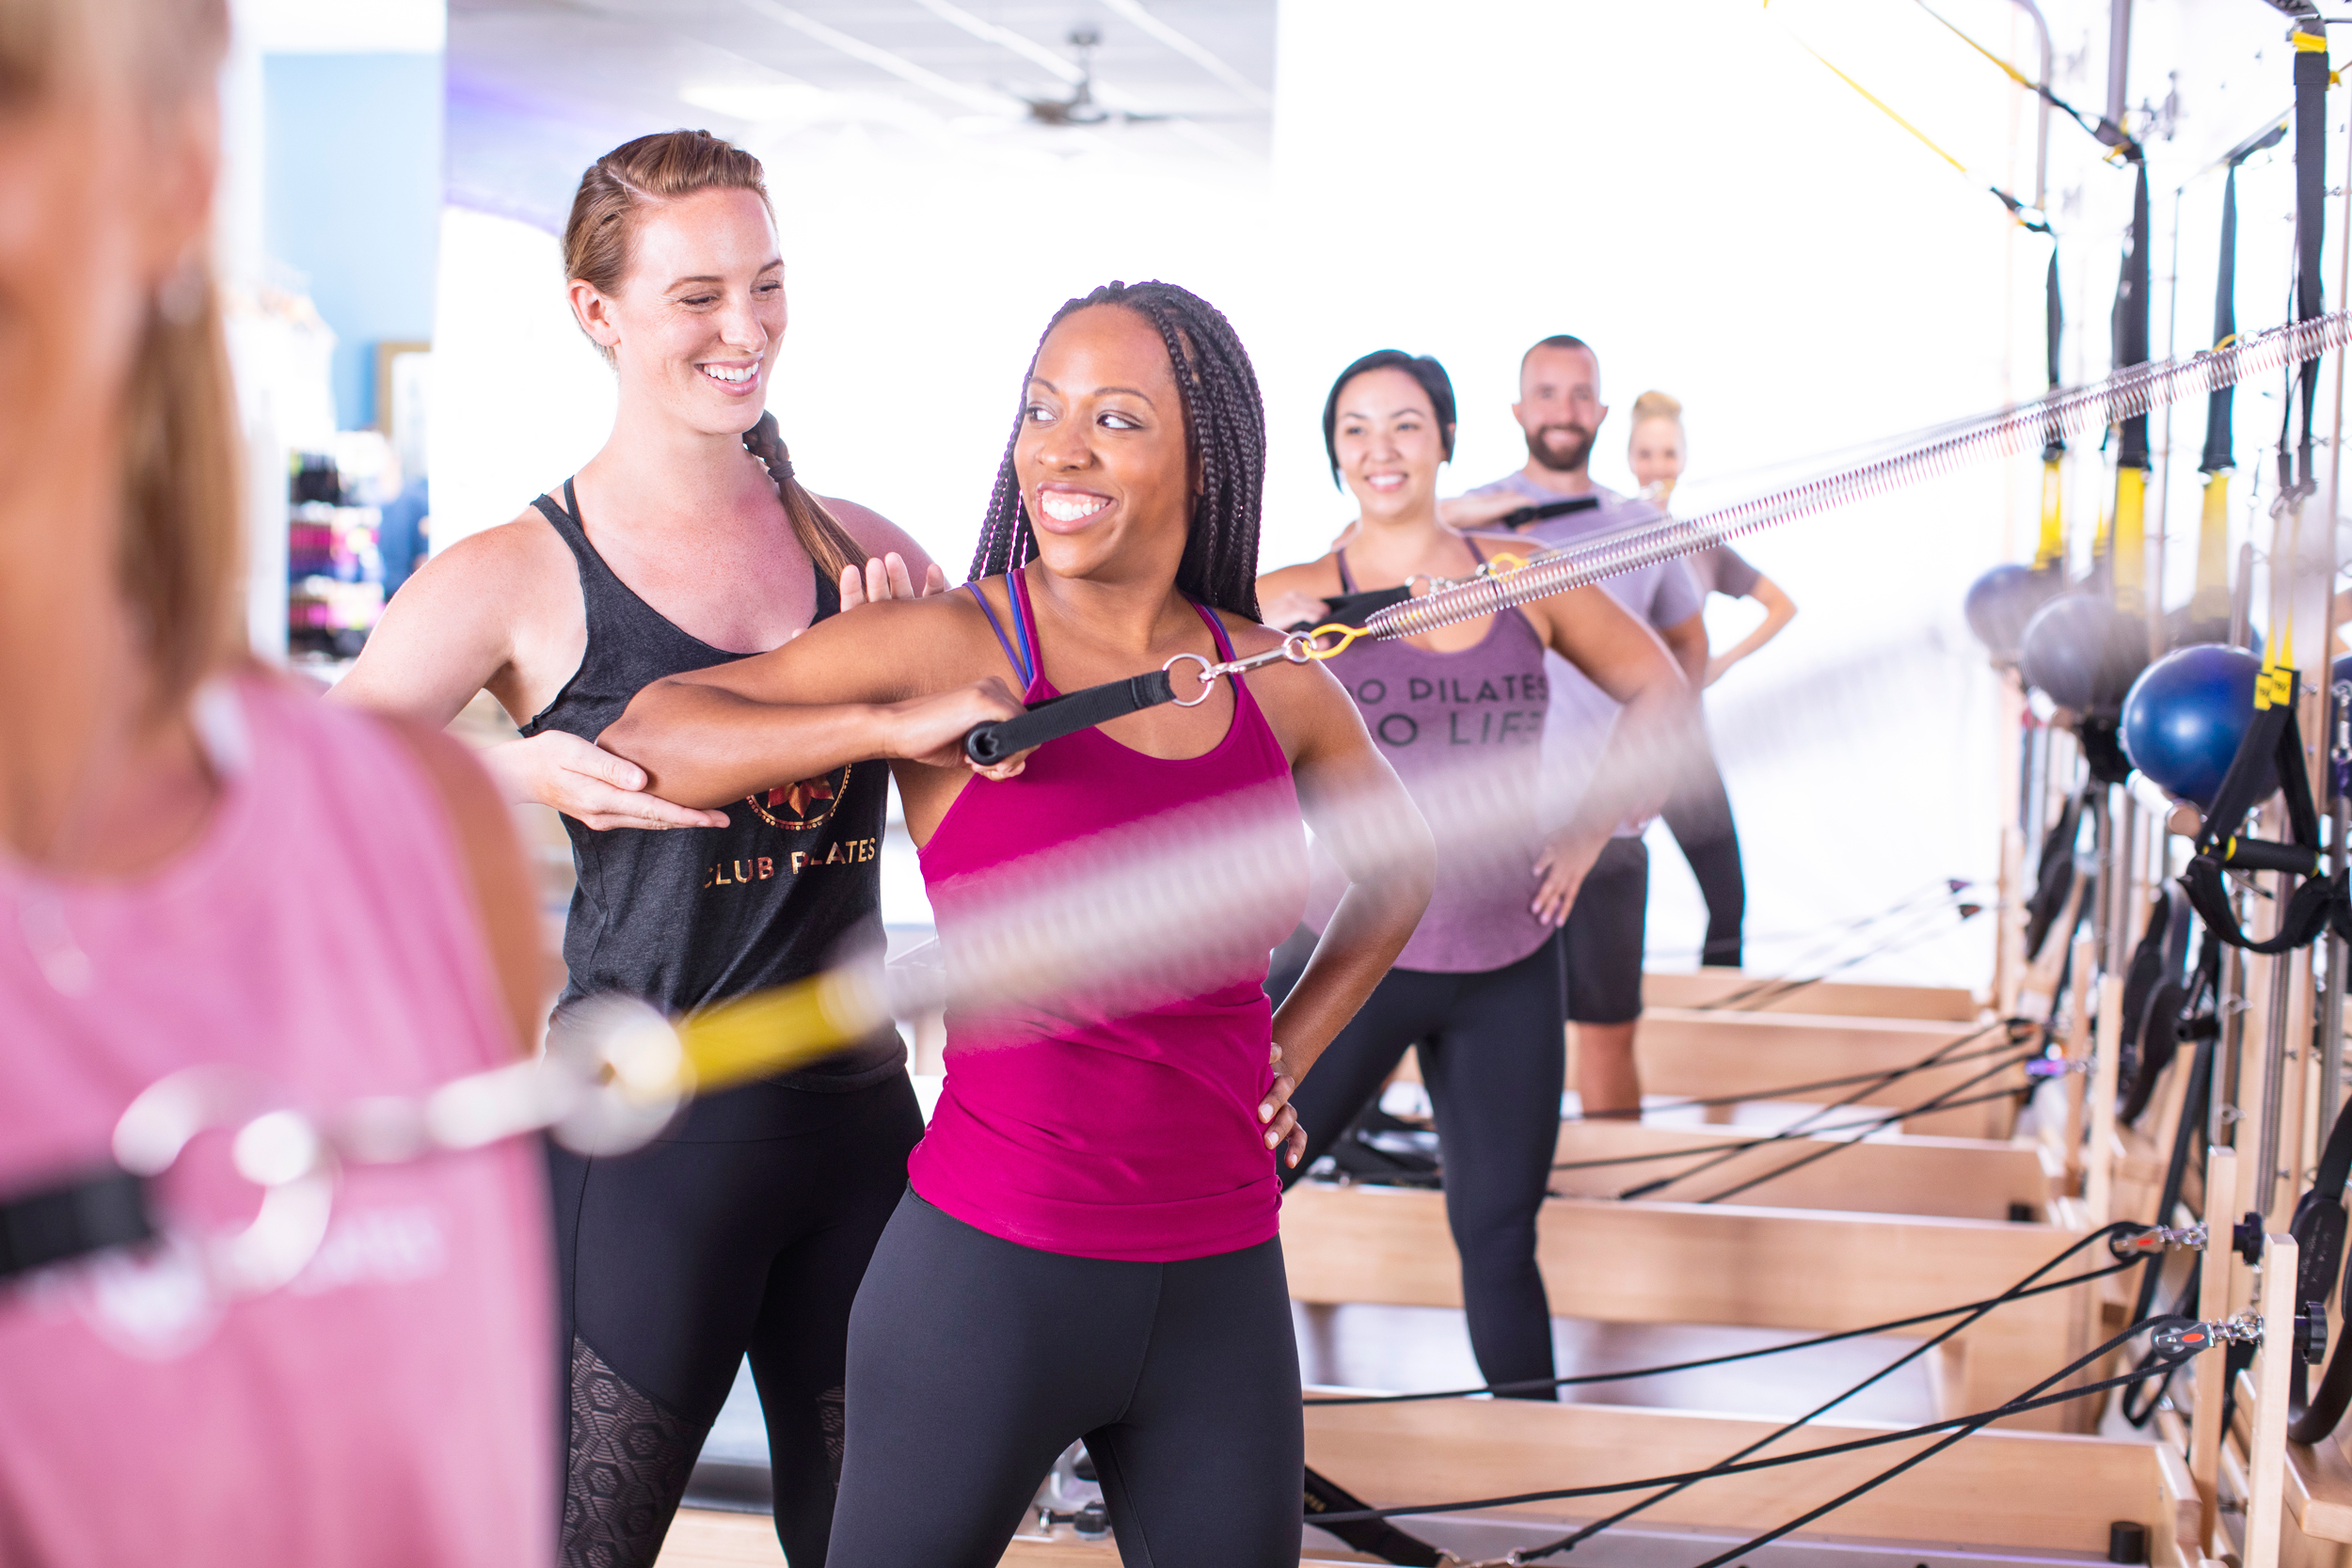 Pilates and Physical Therapy